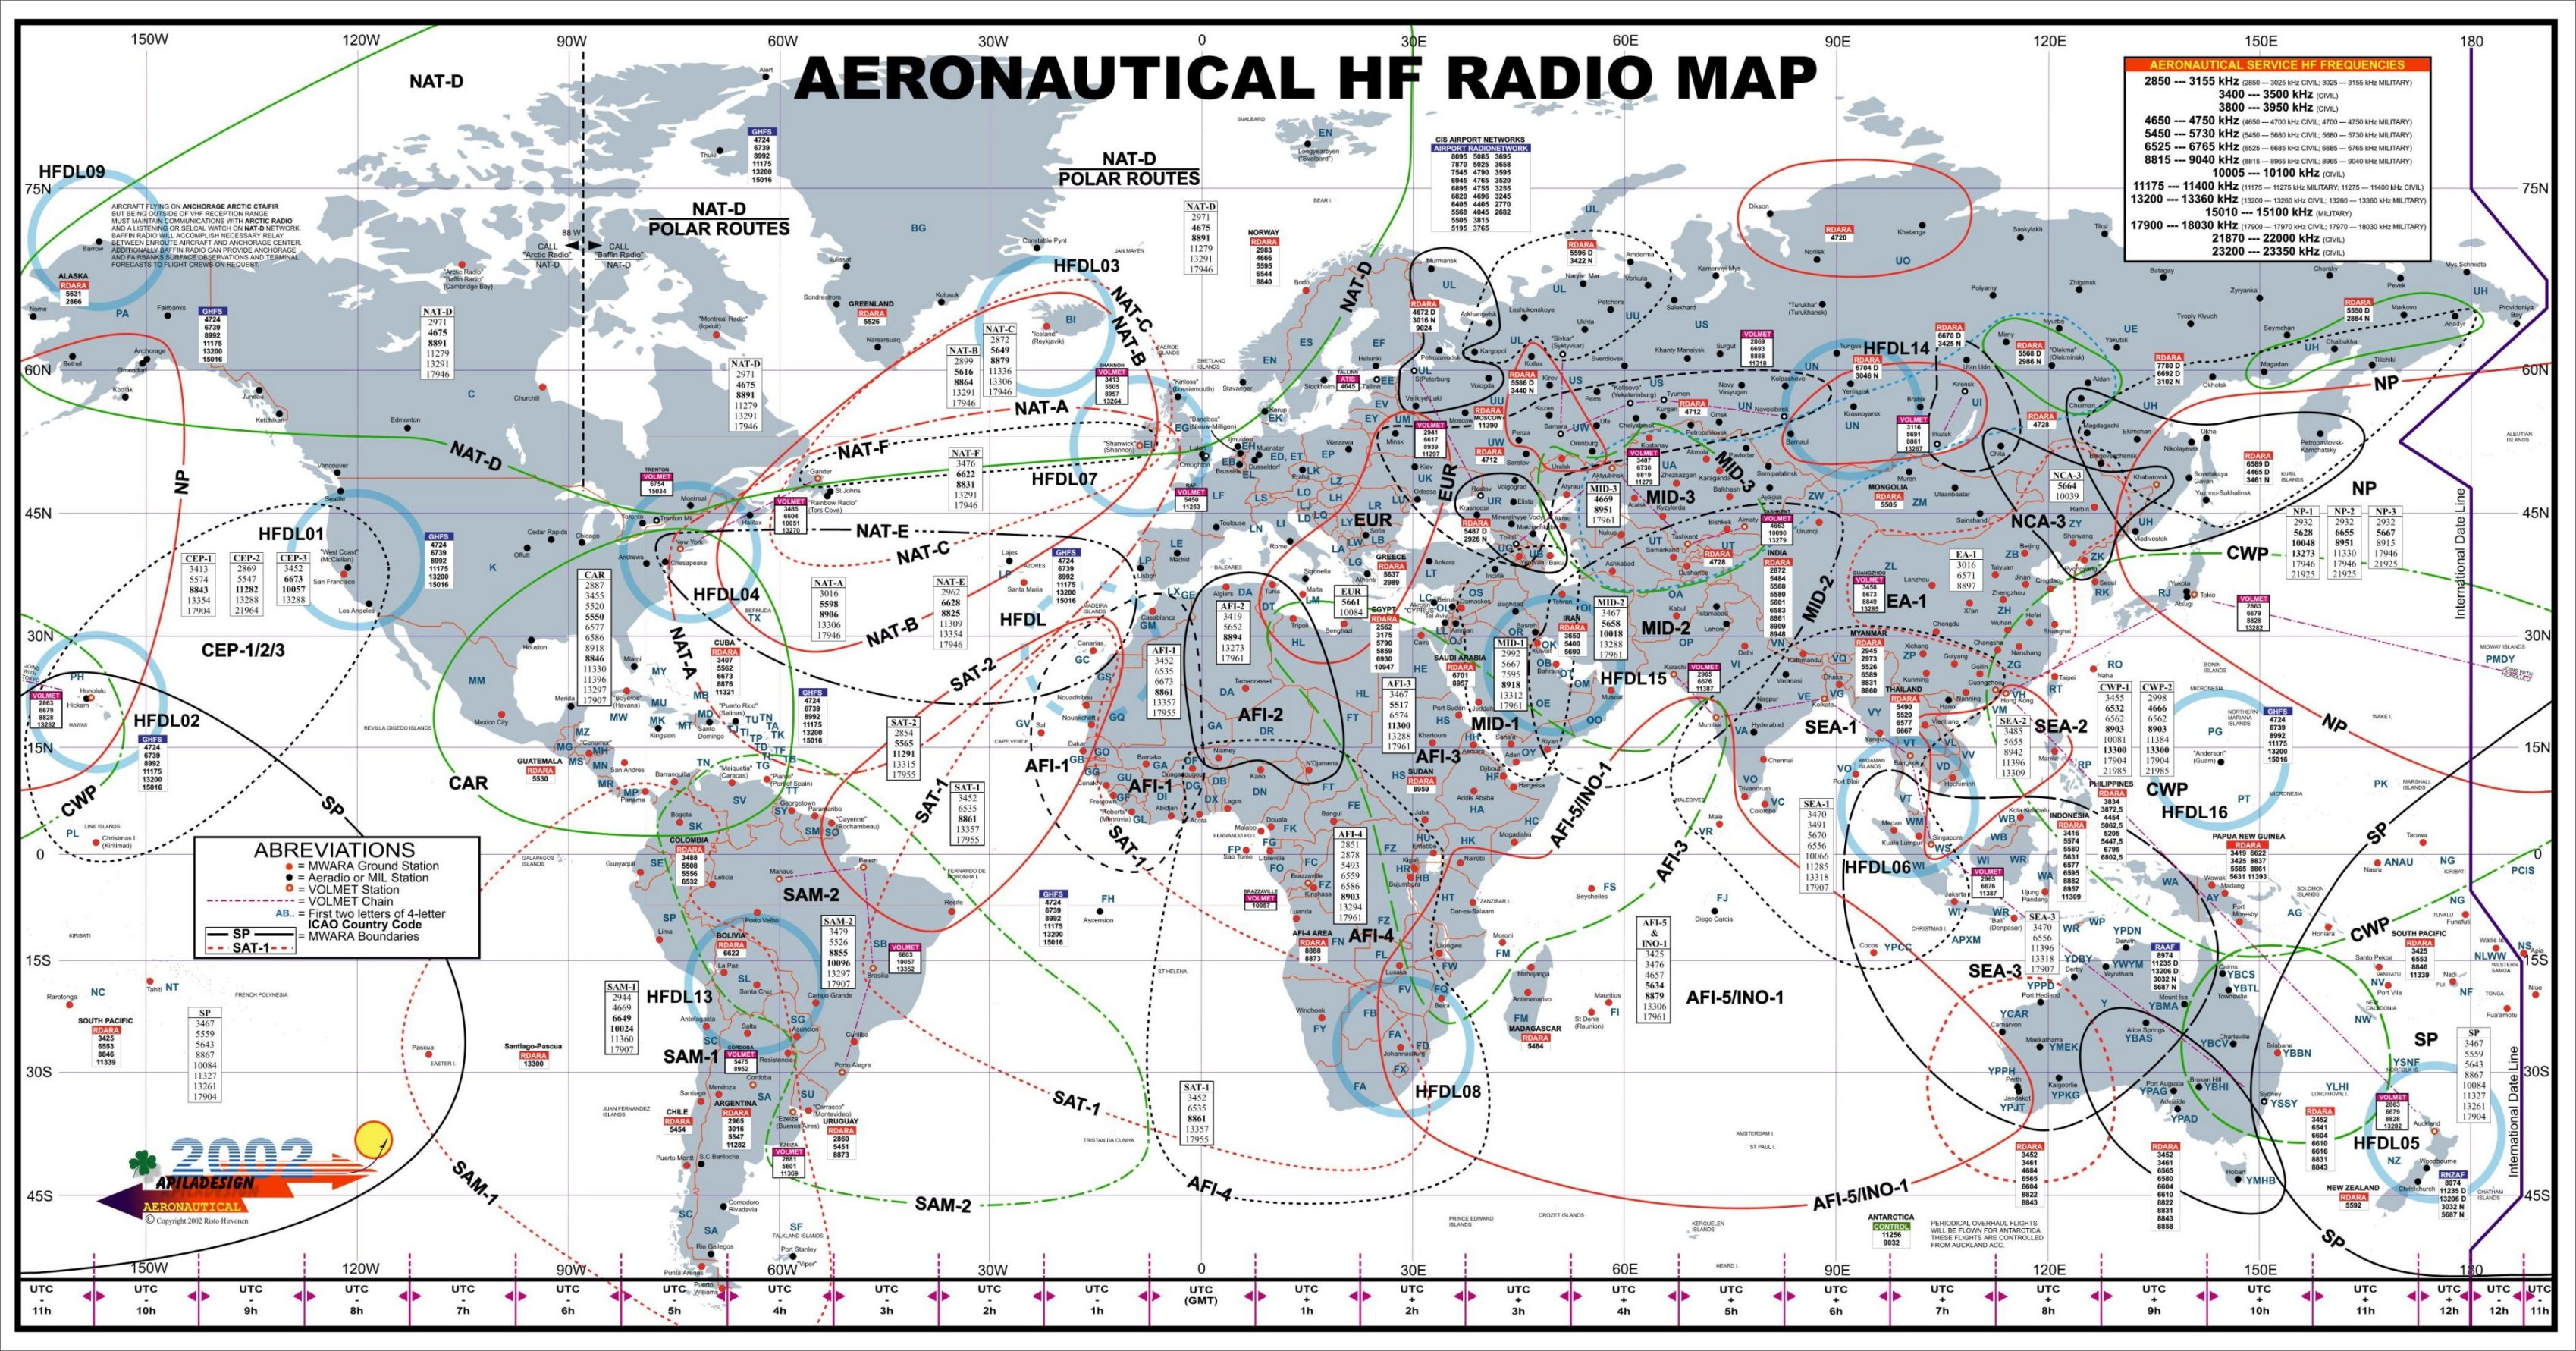 Aeronautical hf radio map qrz now amateur radio news download gumiabroncs Image collections